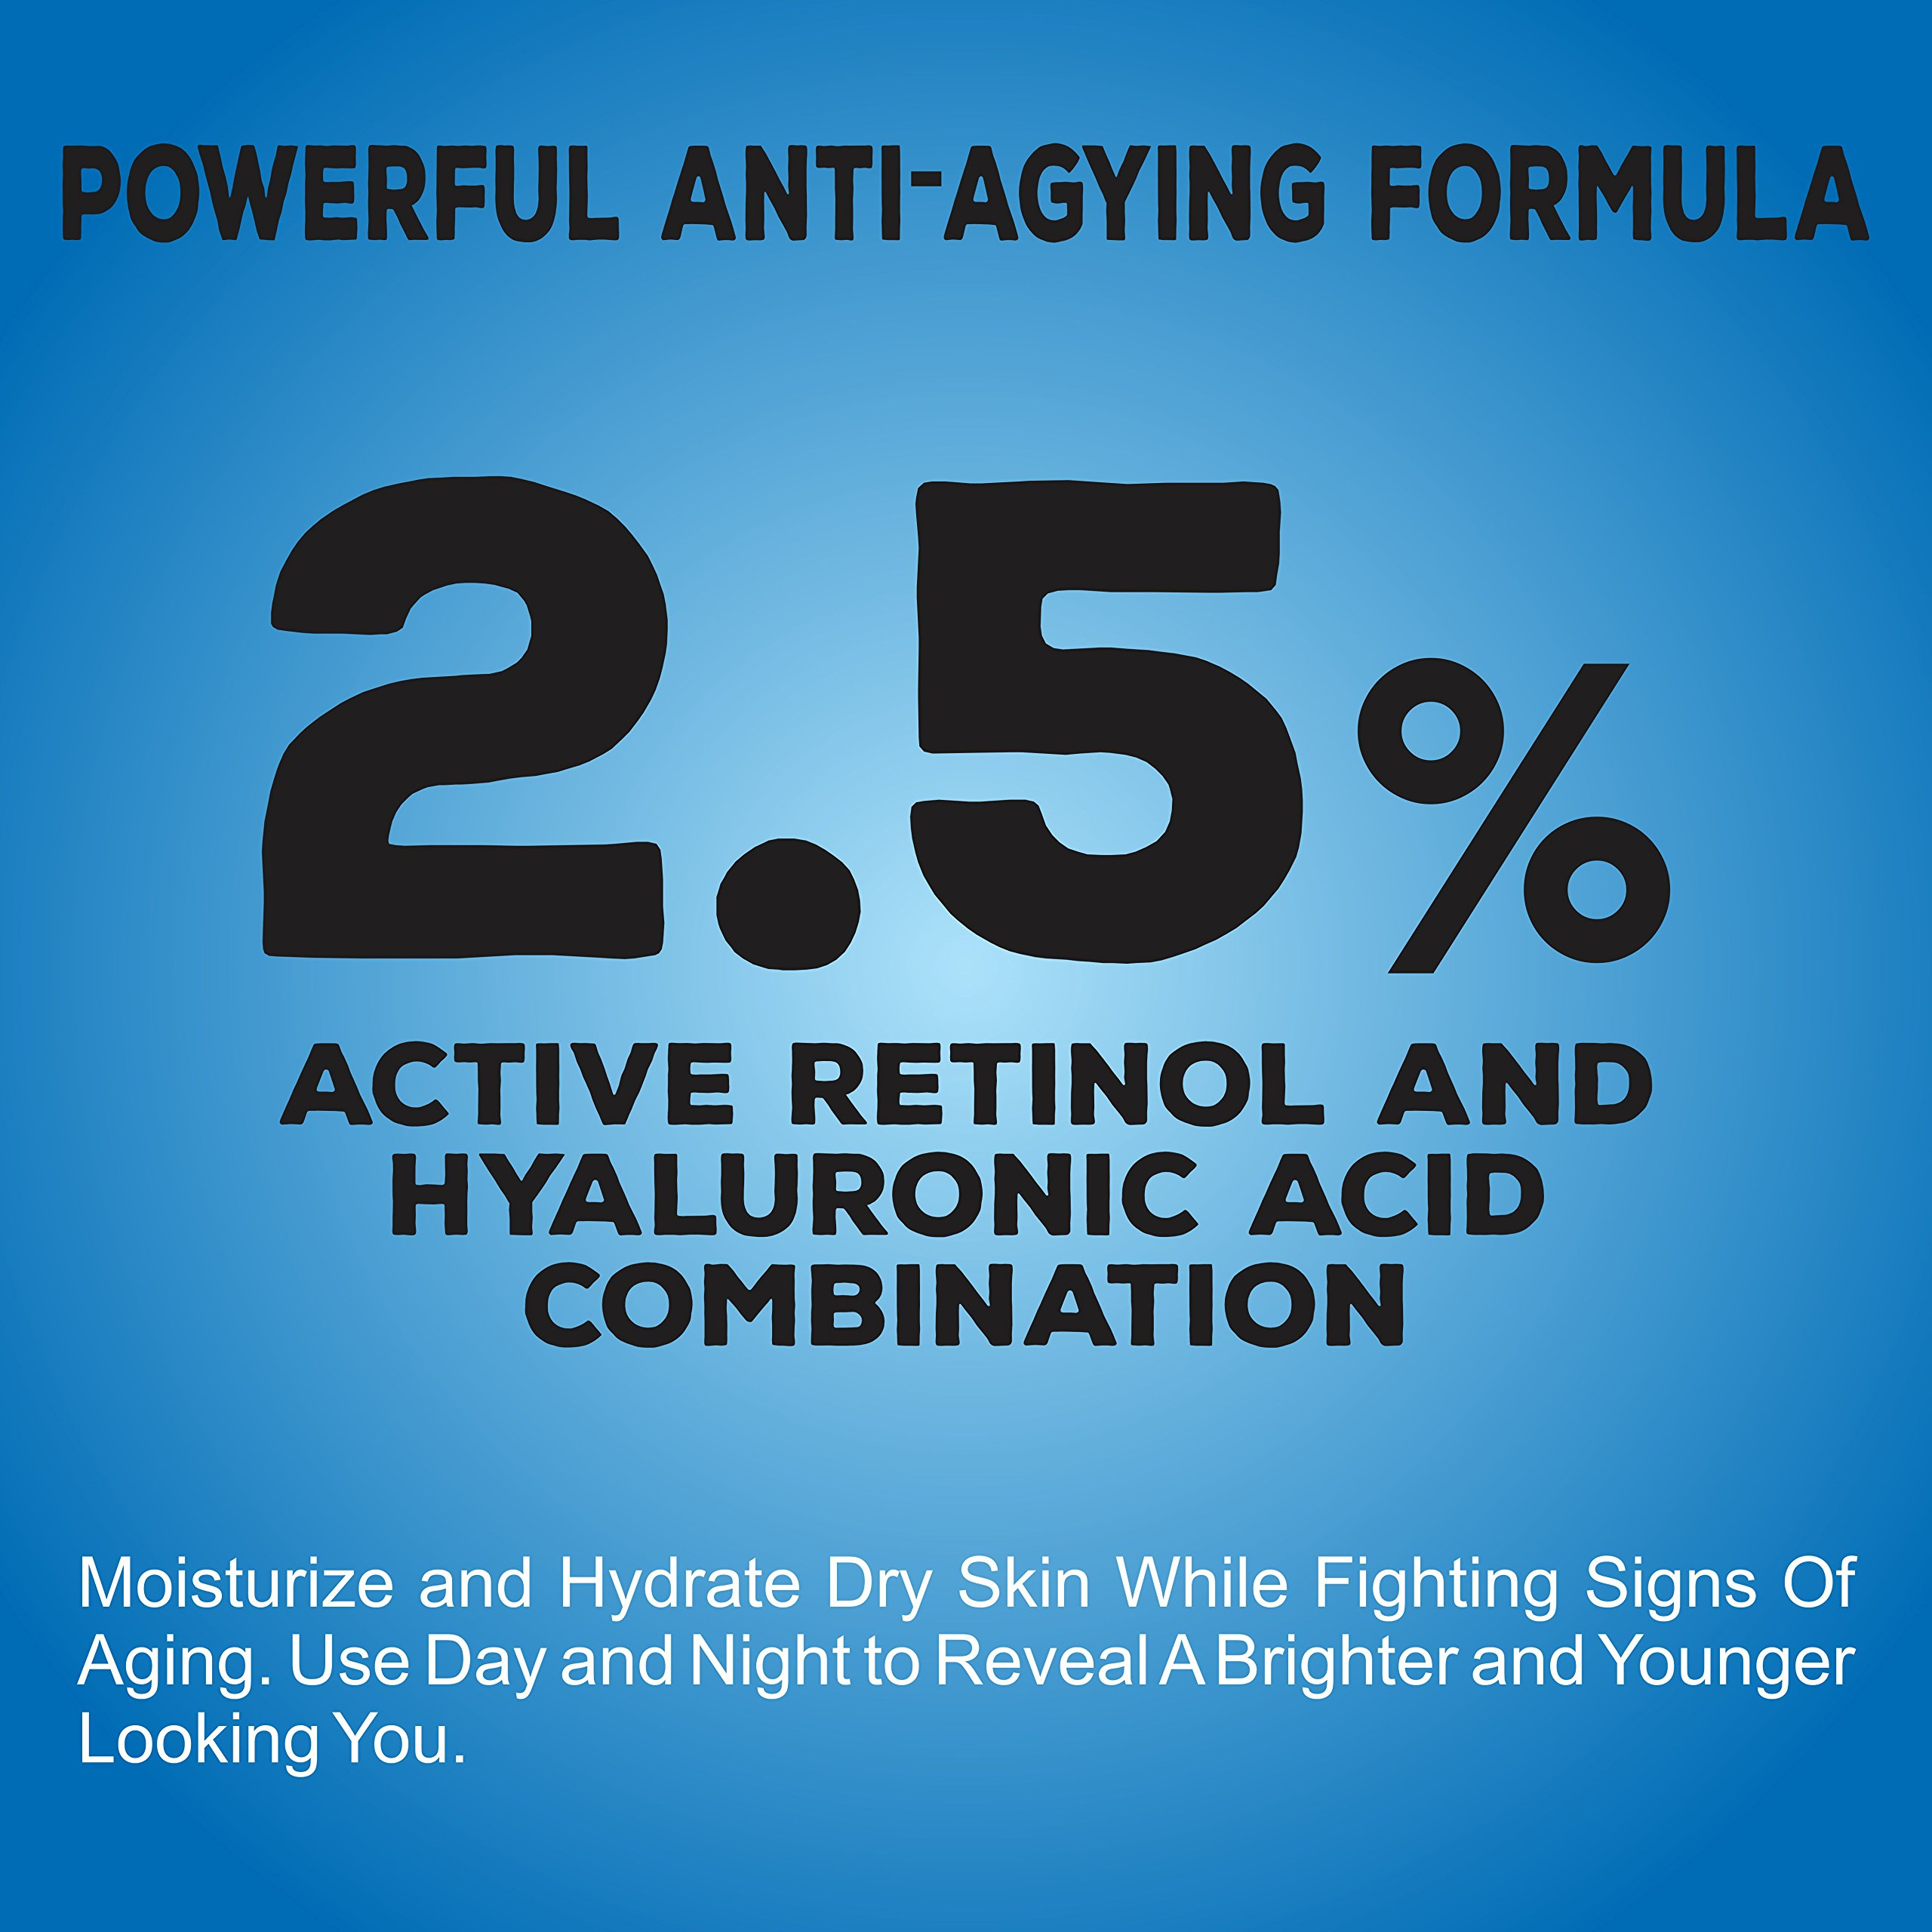 Retinol Moisturizer Cream for Face and Eye Area - Made in USA - with Hyaluronic Acid, Vitamin E - Best Day and Night Anti Aging Formula to Reduce Wrinkles, Fine Lines & Even Skin Tone. by FineVine (Image #4)